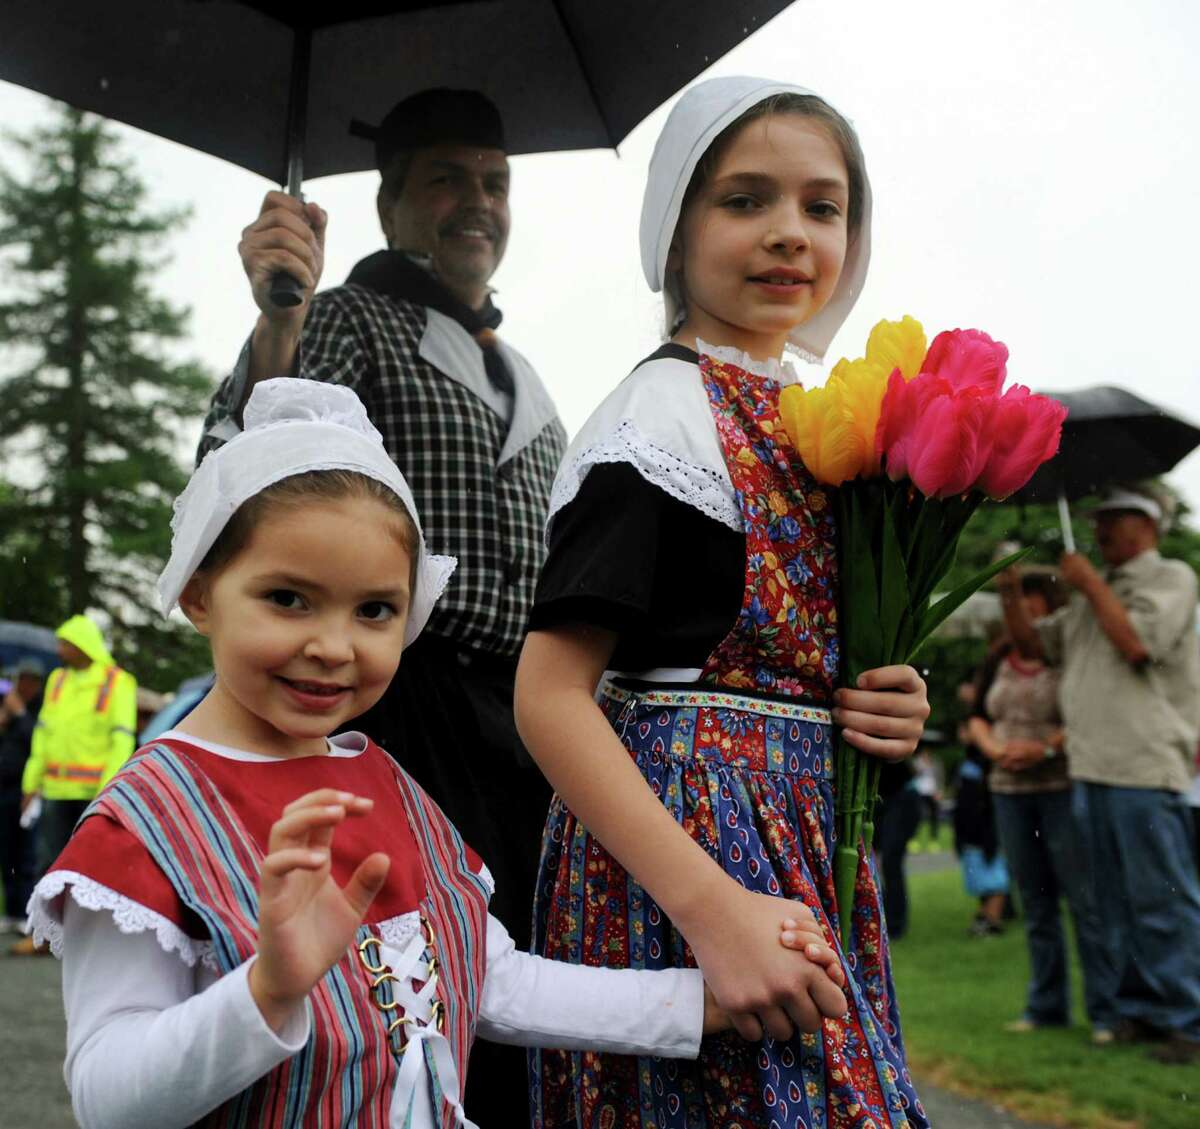 Callista Schermerhorn, 4, left, and her sister Alexandra, 10, walk with the Dutch Settlers Society as they parade toward the coronation during the Tulip Festival on Saturday, May 11, 2013, at Washington Park in Albany, N.Y. (Cindy Schultz / Times Union)